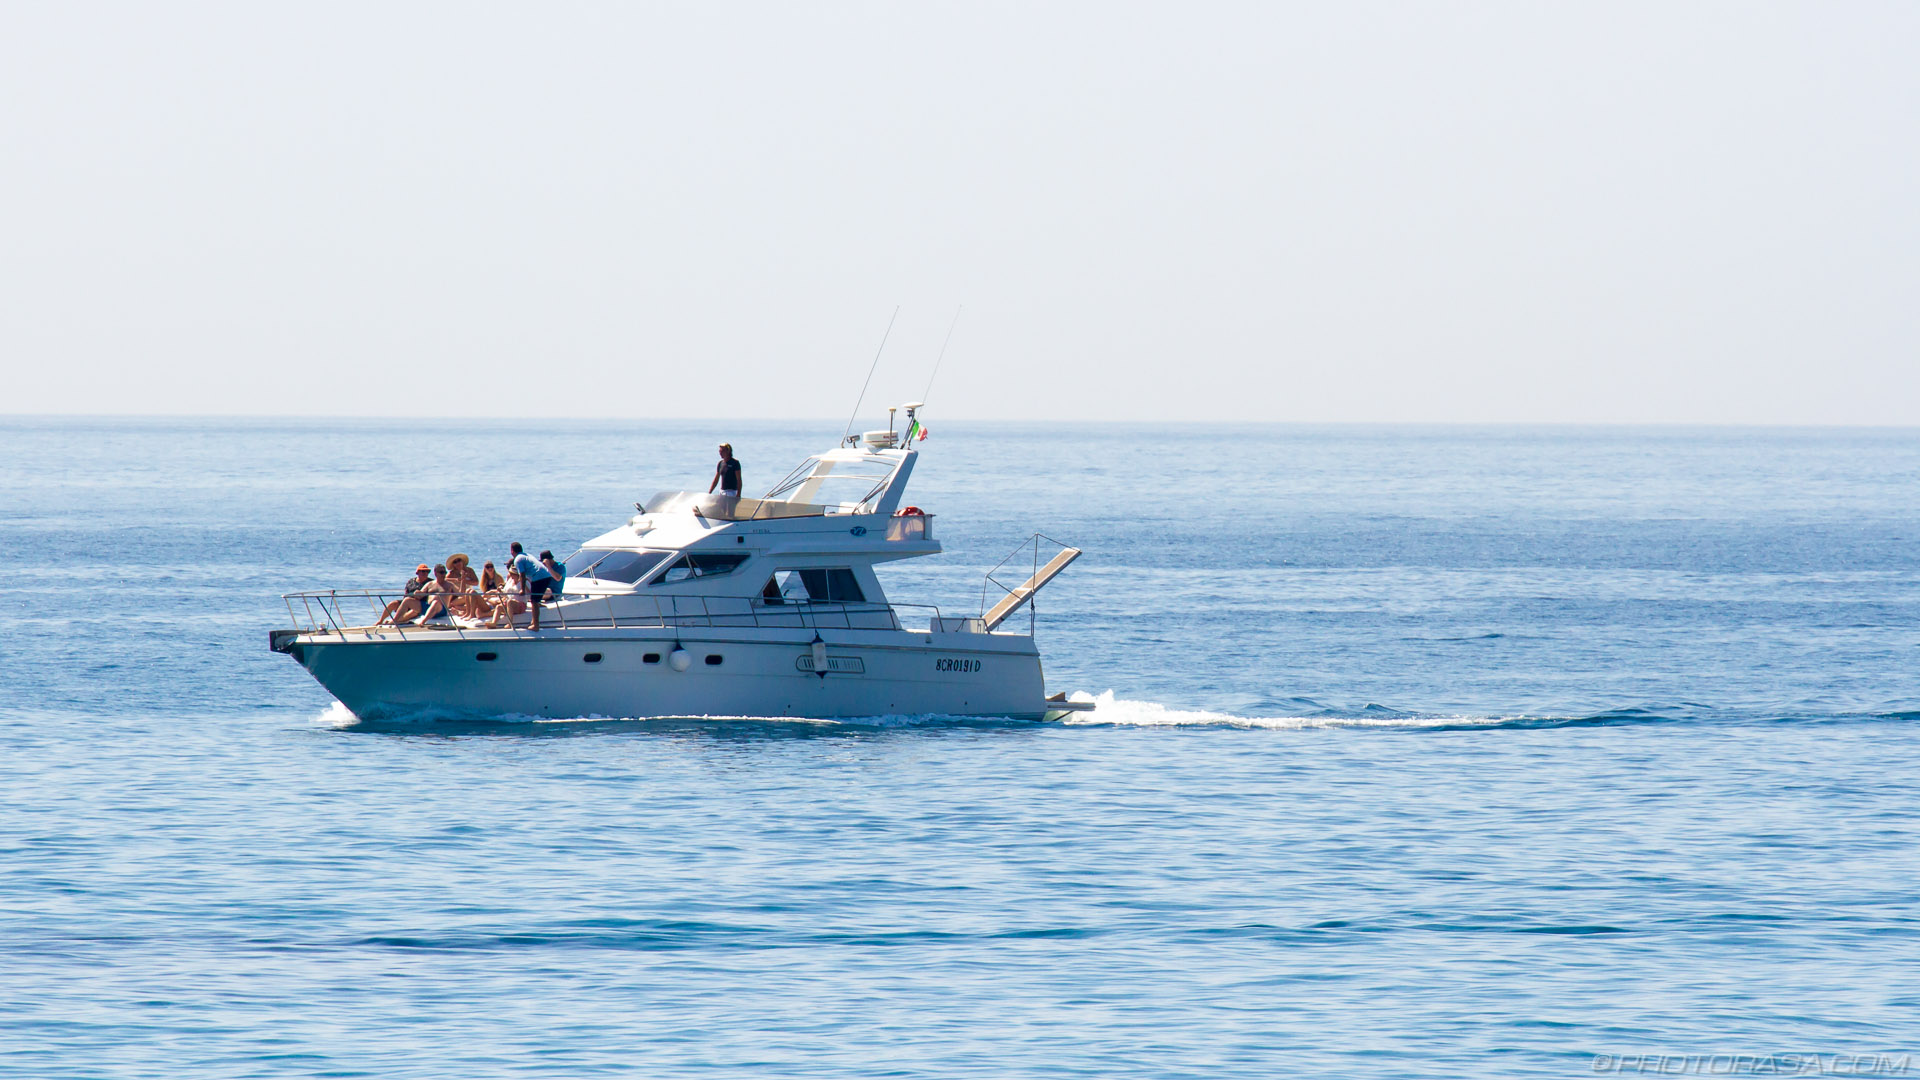 https://photorasa.com/giardini-naxos/speeding-yacht-full-of-people/